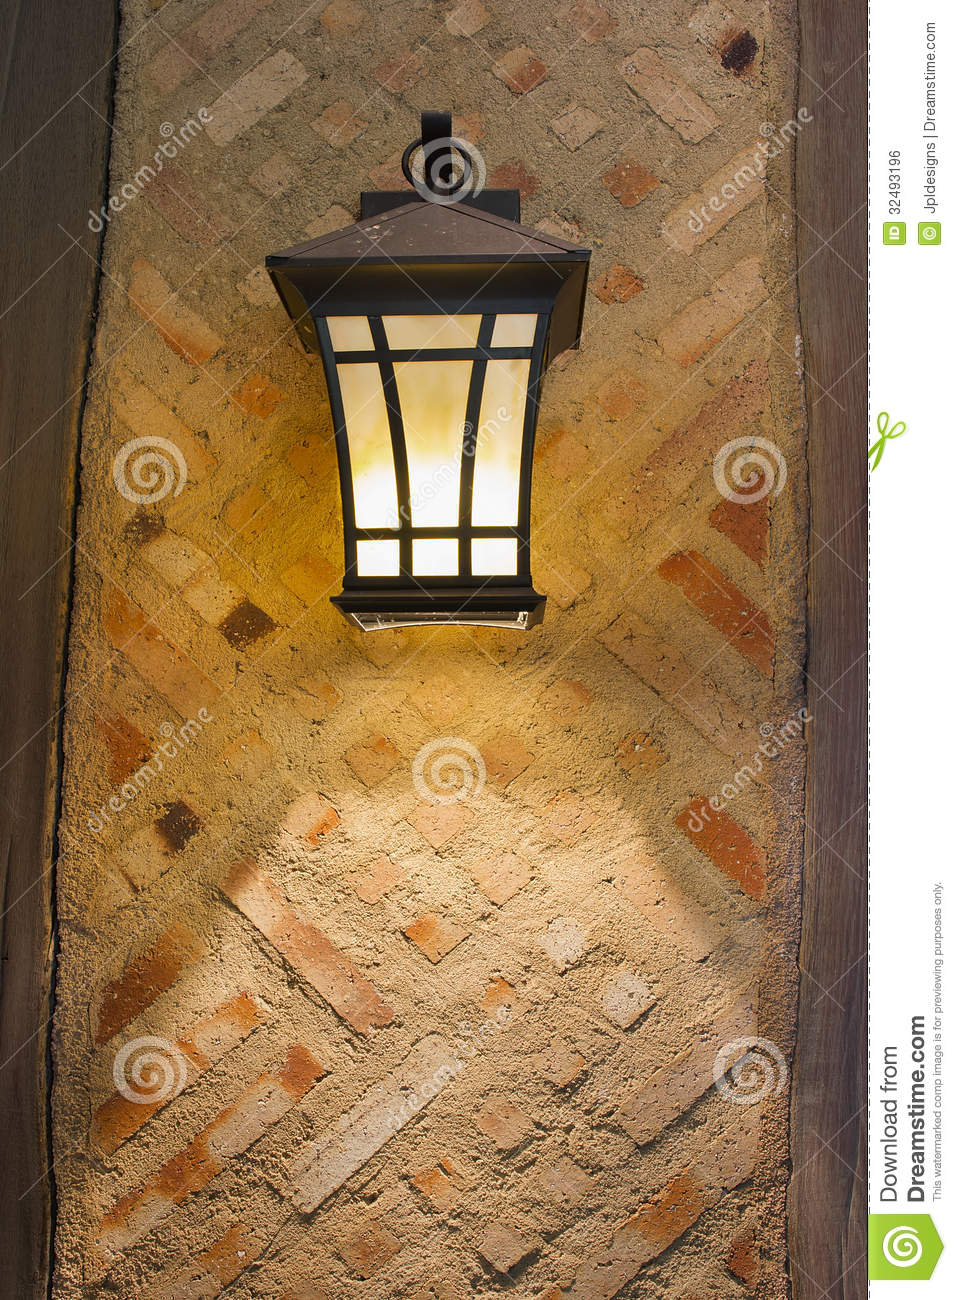 Craftsman Style Exterior Lamp On Exterior Wall Royalty Free Stock ...